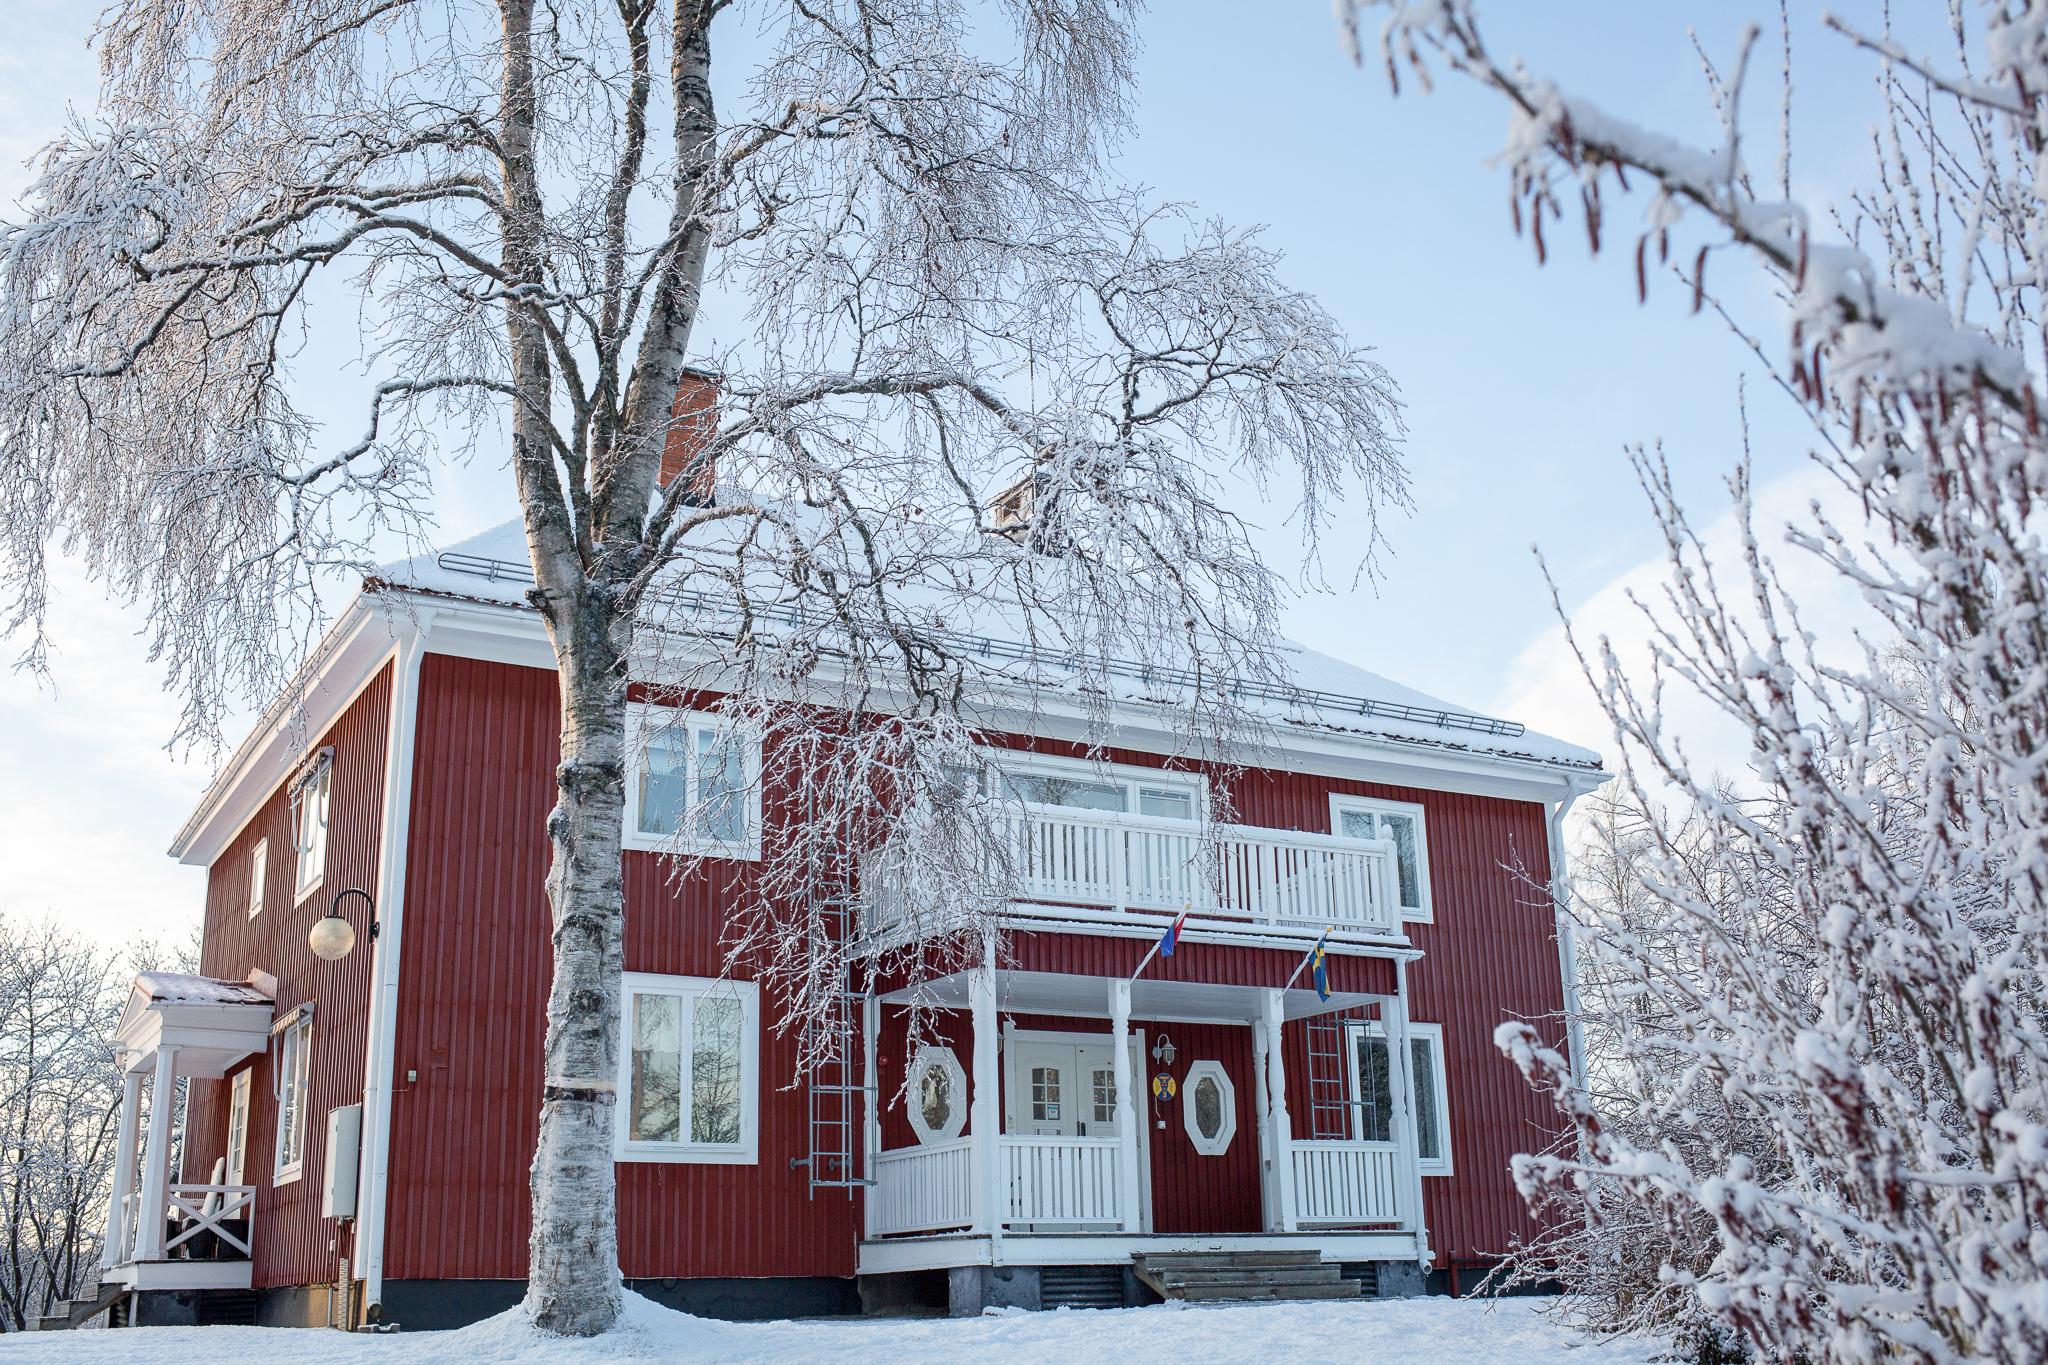 Copy of Jokkmokk guesthouse. Photo: Maria Klang